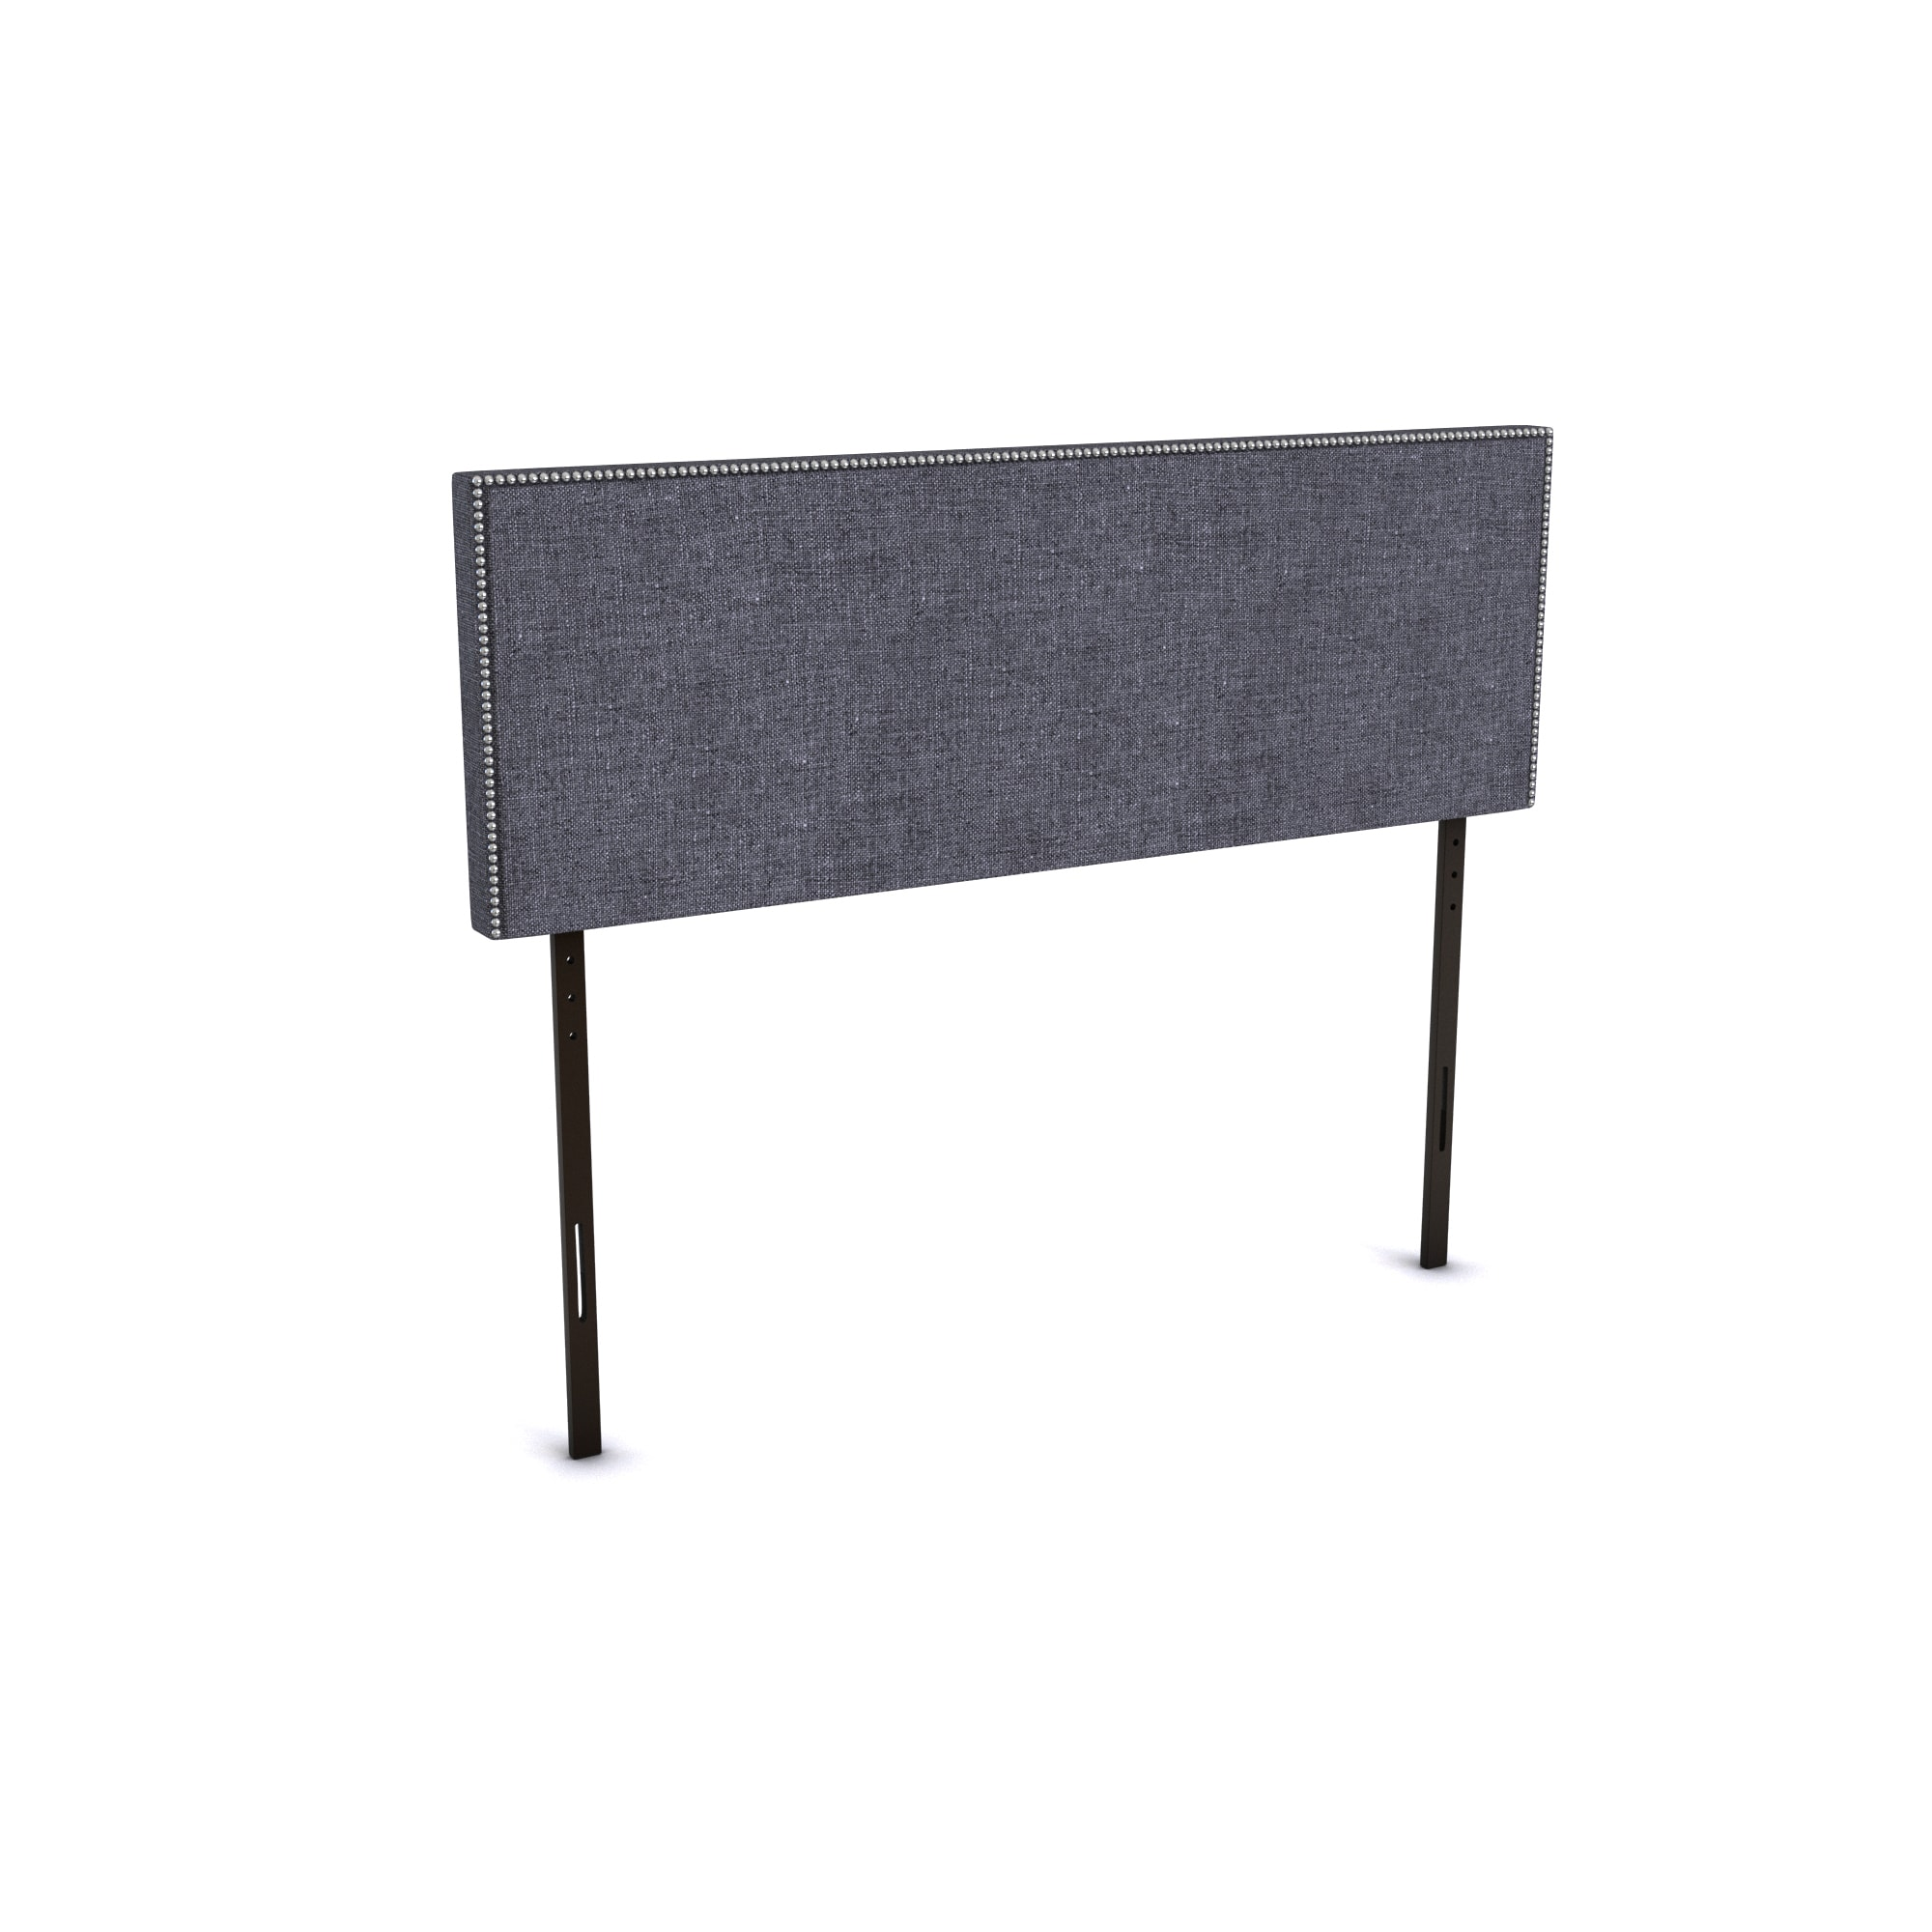 Shop Silver Lake Quintero Queen-size Nailhead Upholstered Headboard ...